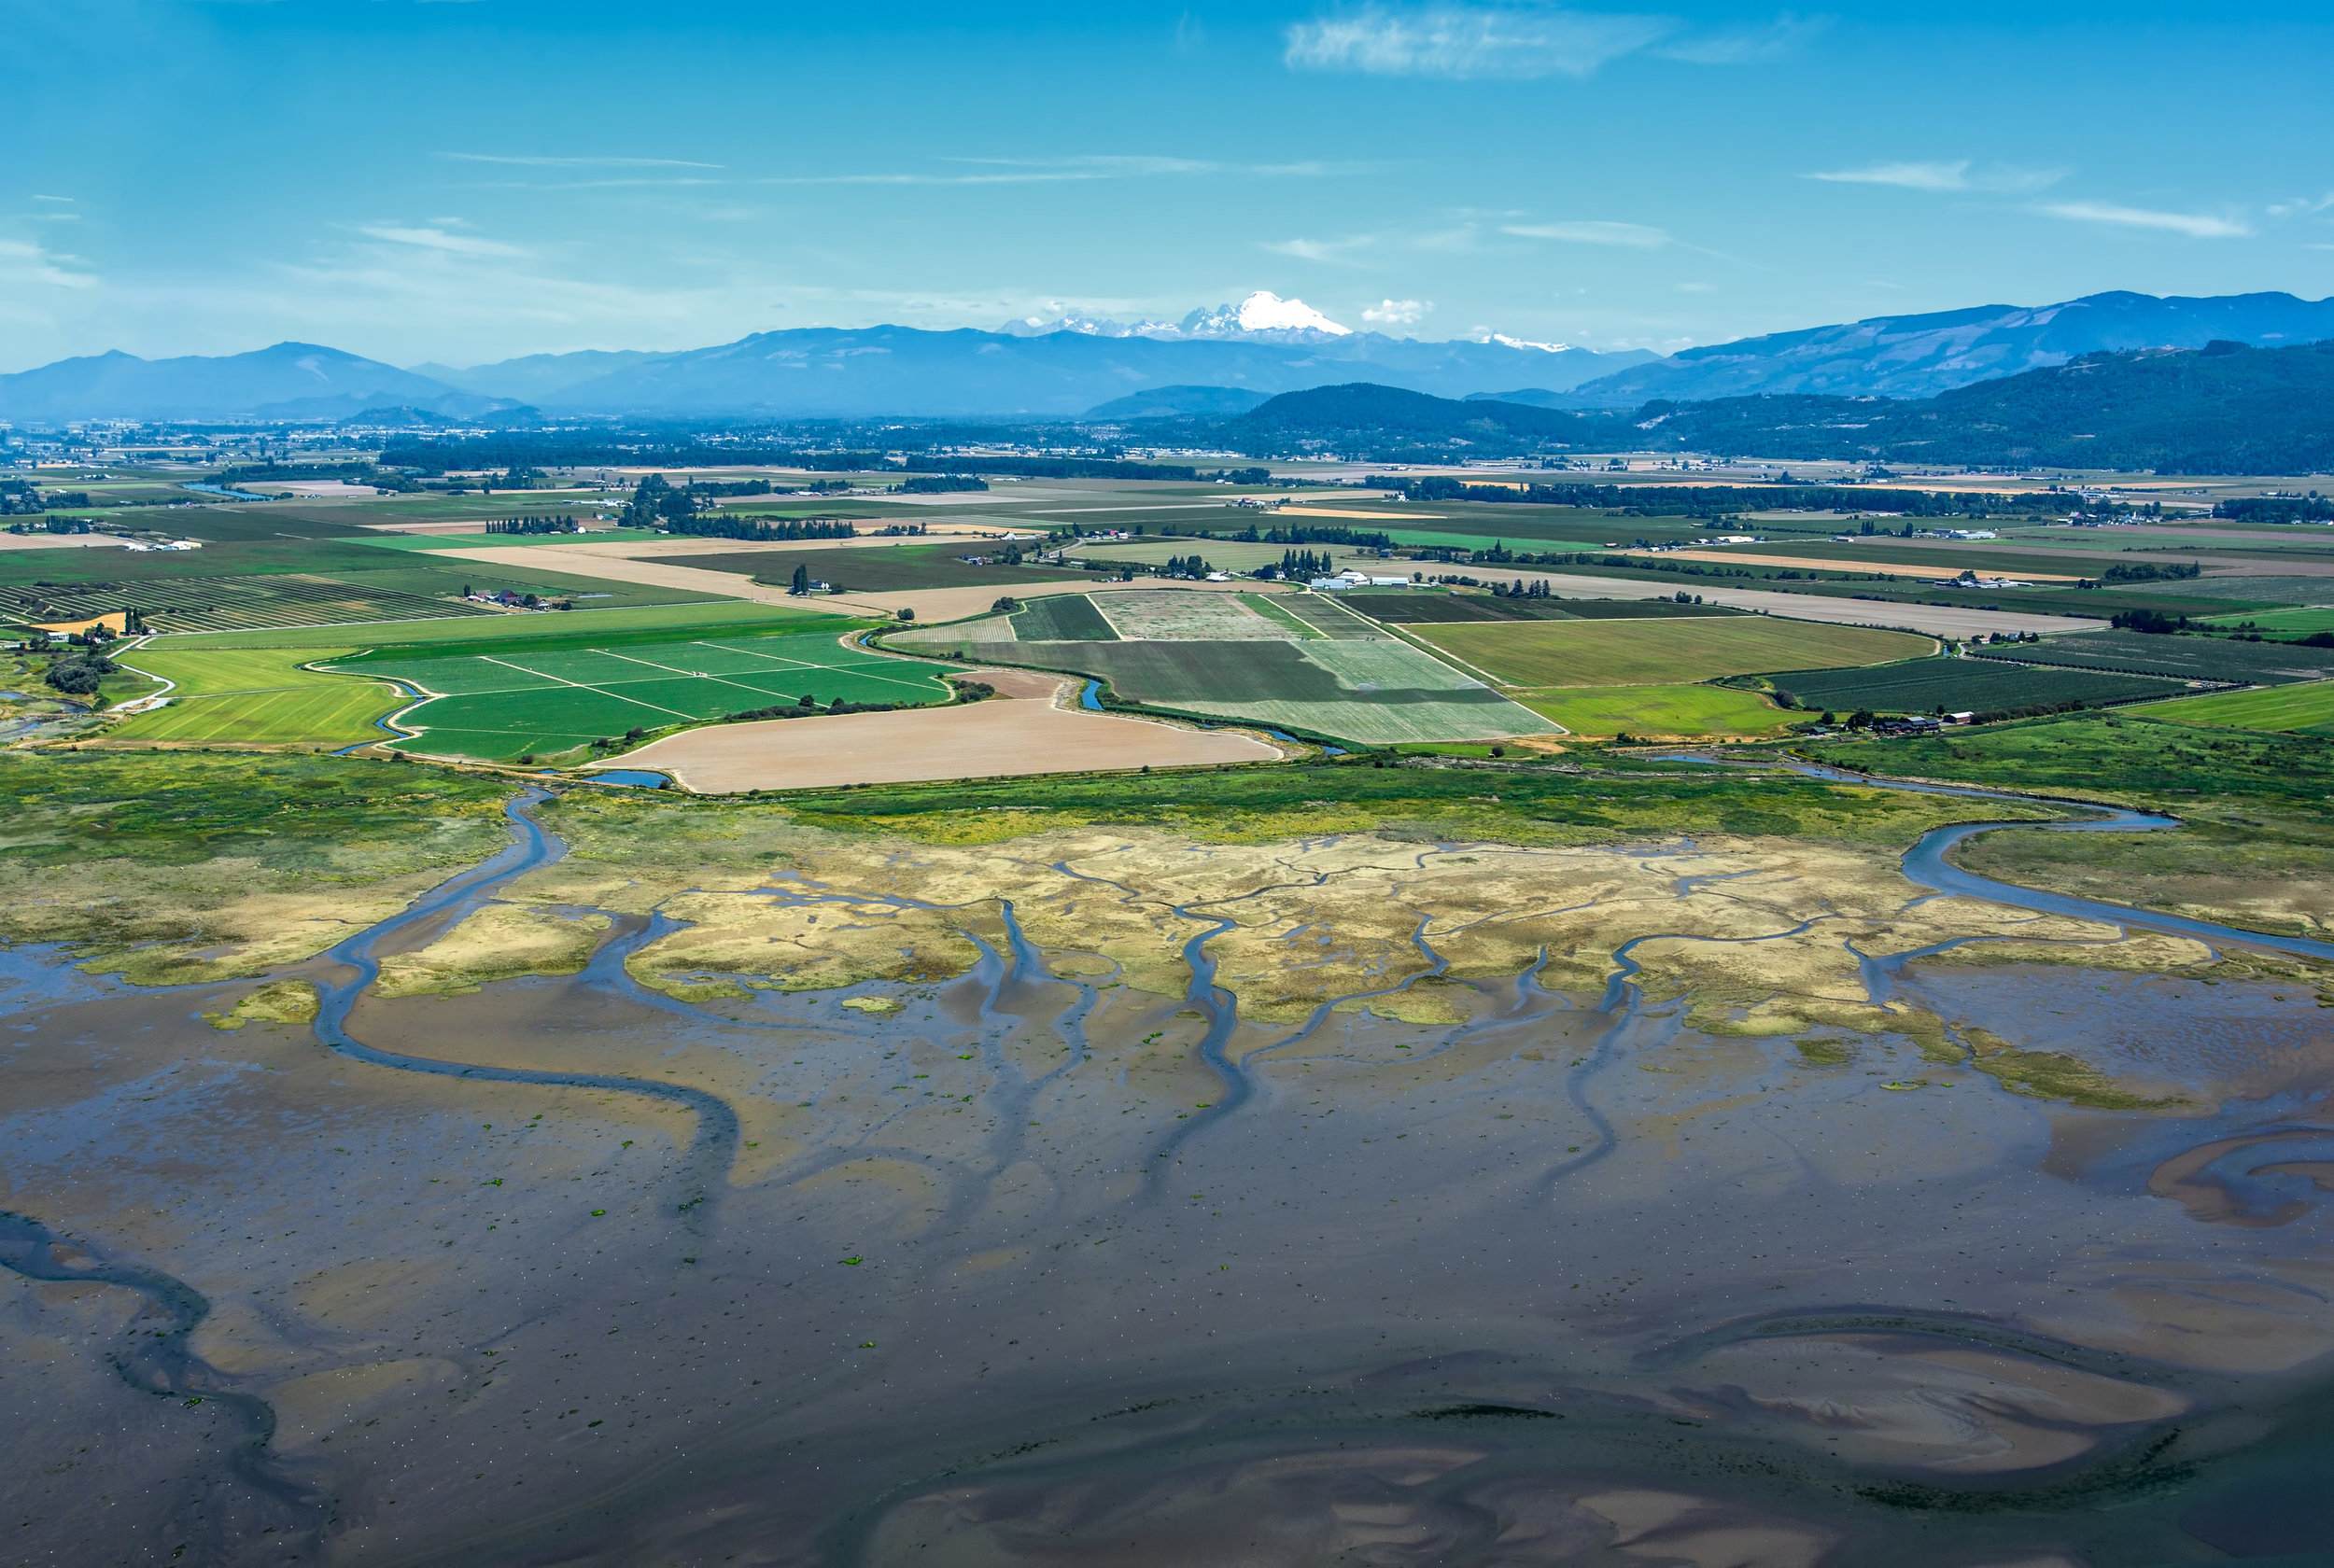 Aerial view of Skagit County's Fir Island farms and floopdplains, amongst the Cascade Mountains in the background. Photo  ©  Marlin Greene/One Earth Images